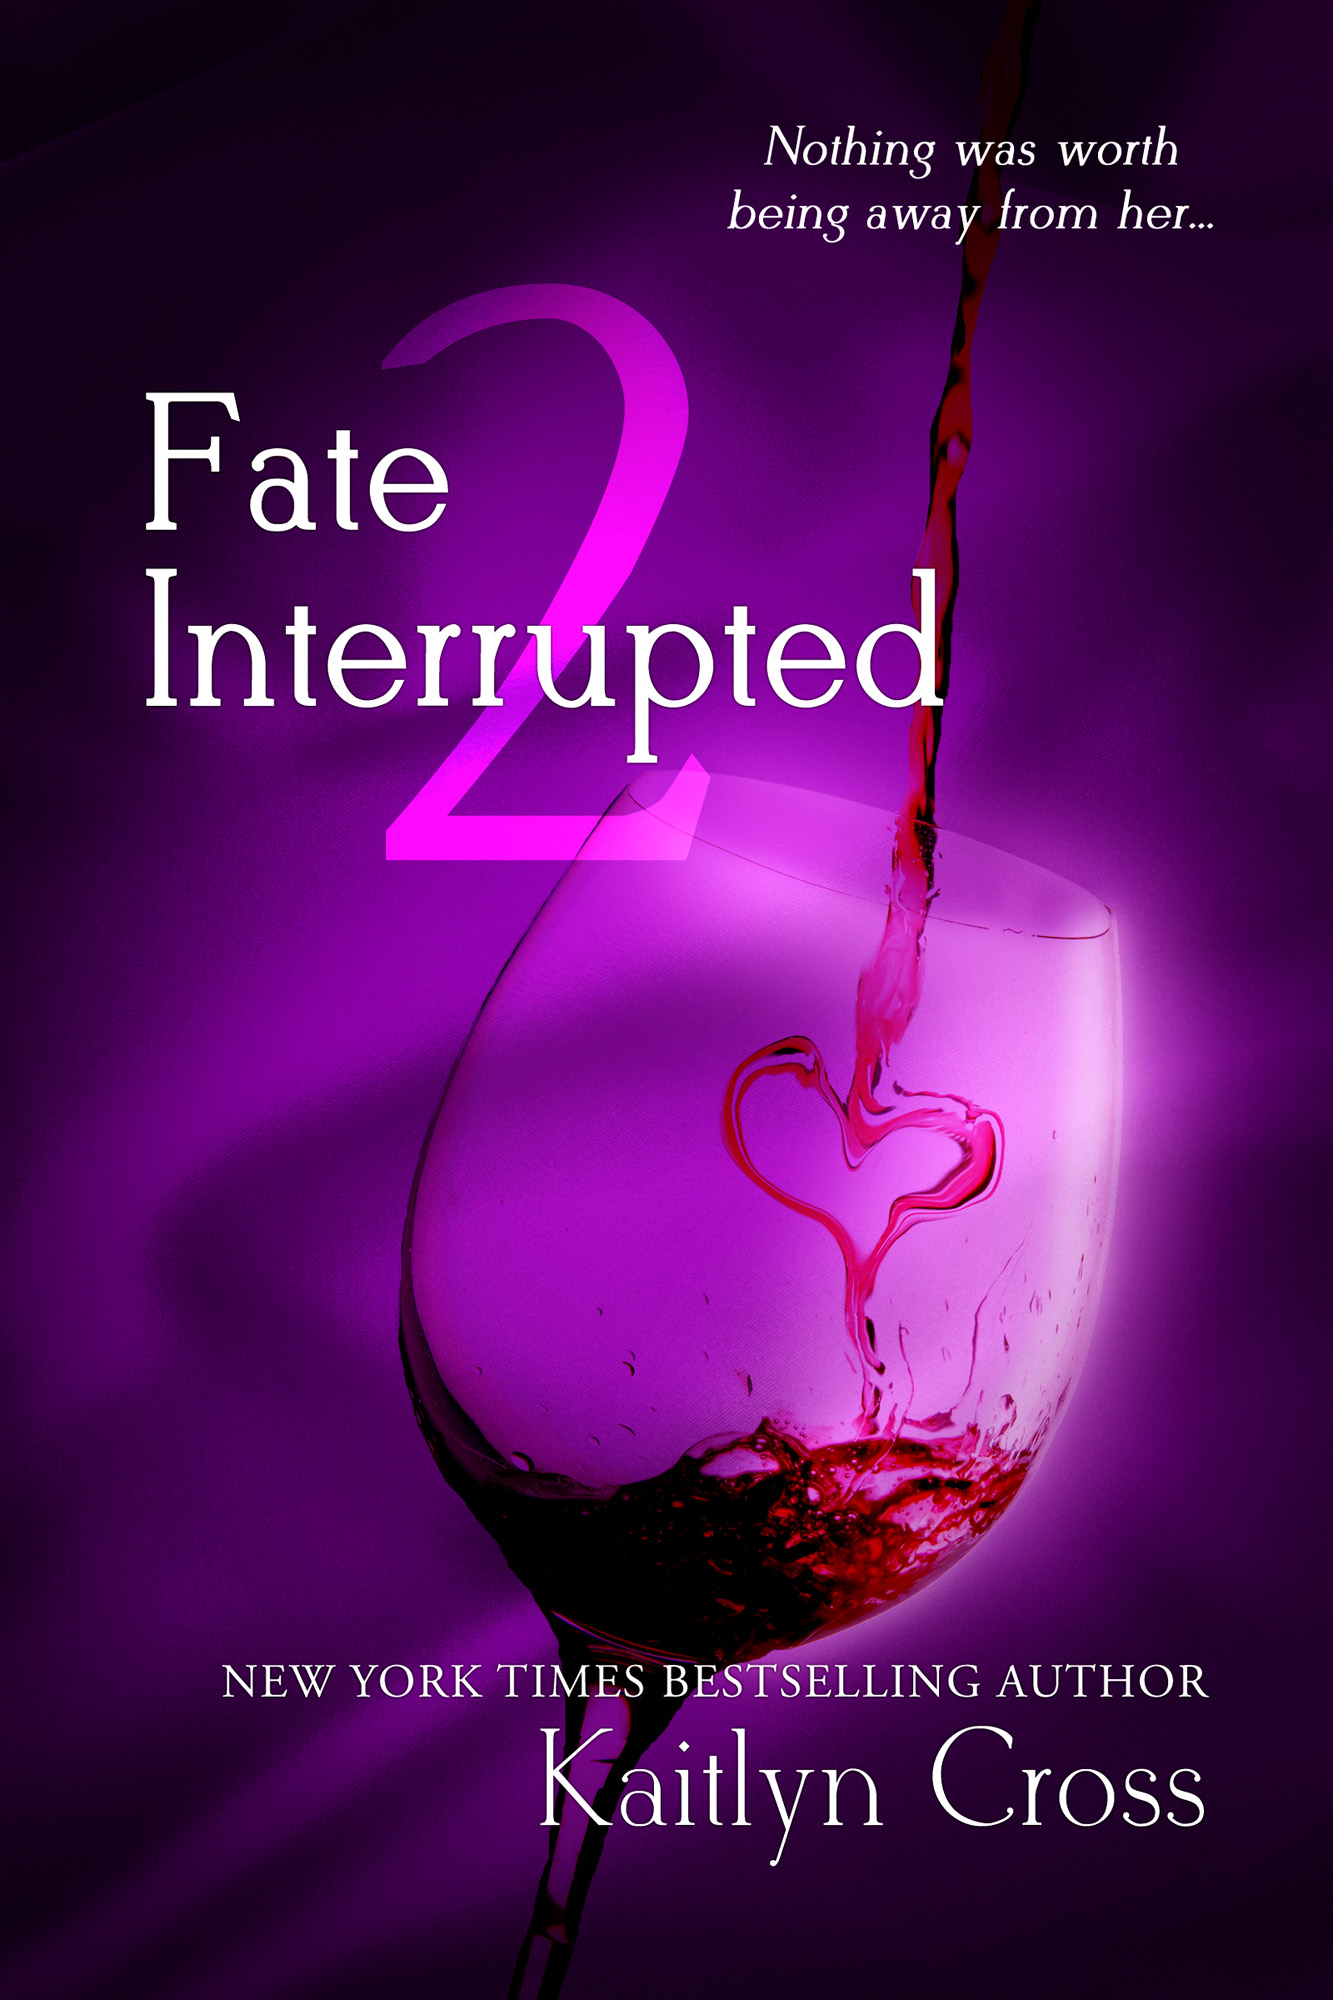 Fate Interrupted 2 (Book 2 of 2) By: Kaitlyn Cross